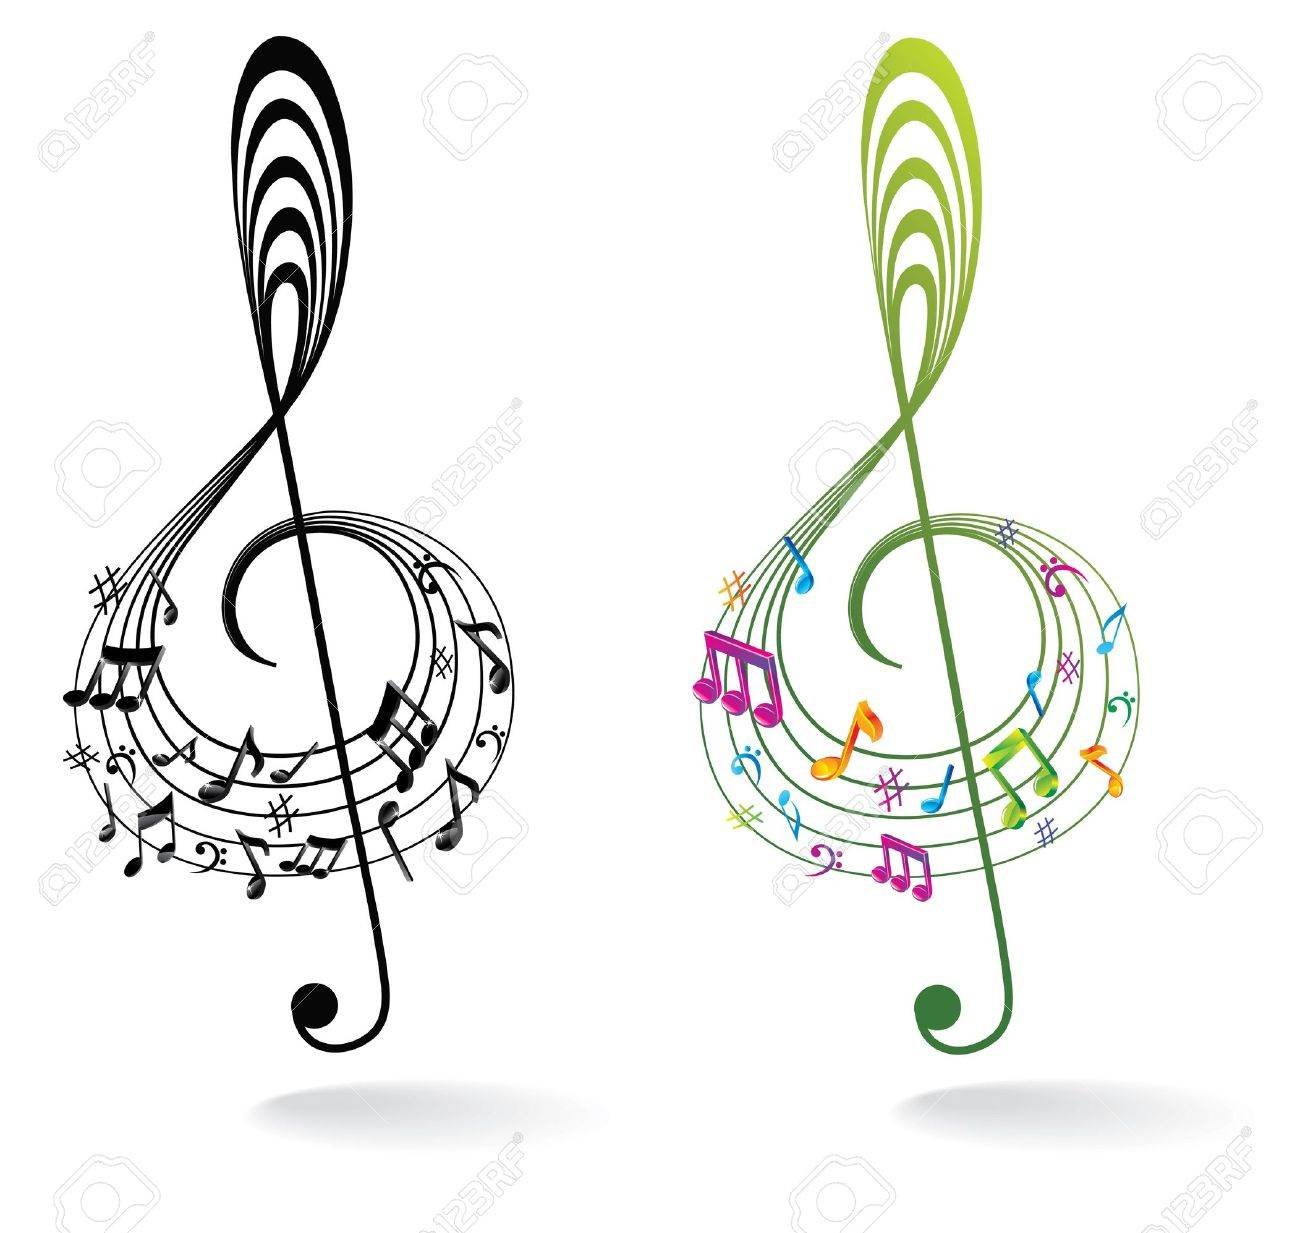 Background with Music Note. Stock Vector - 16579452